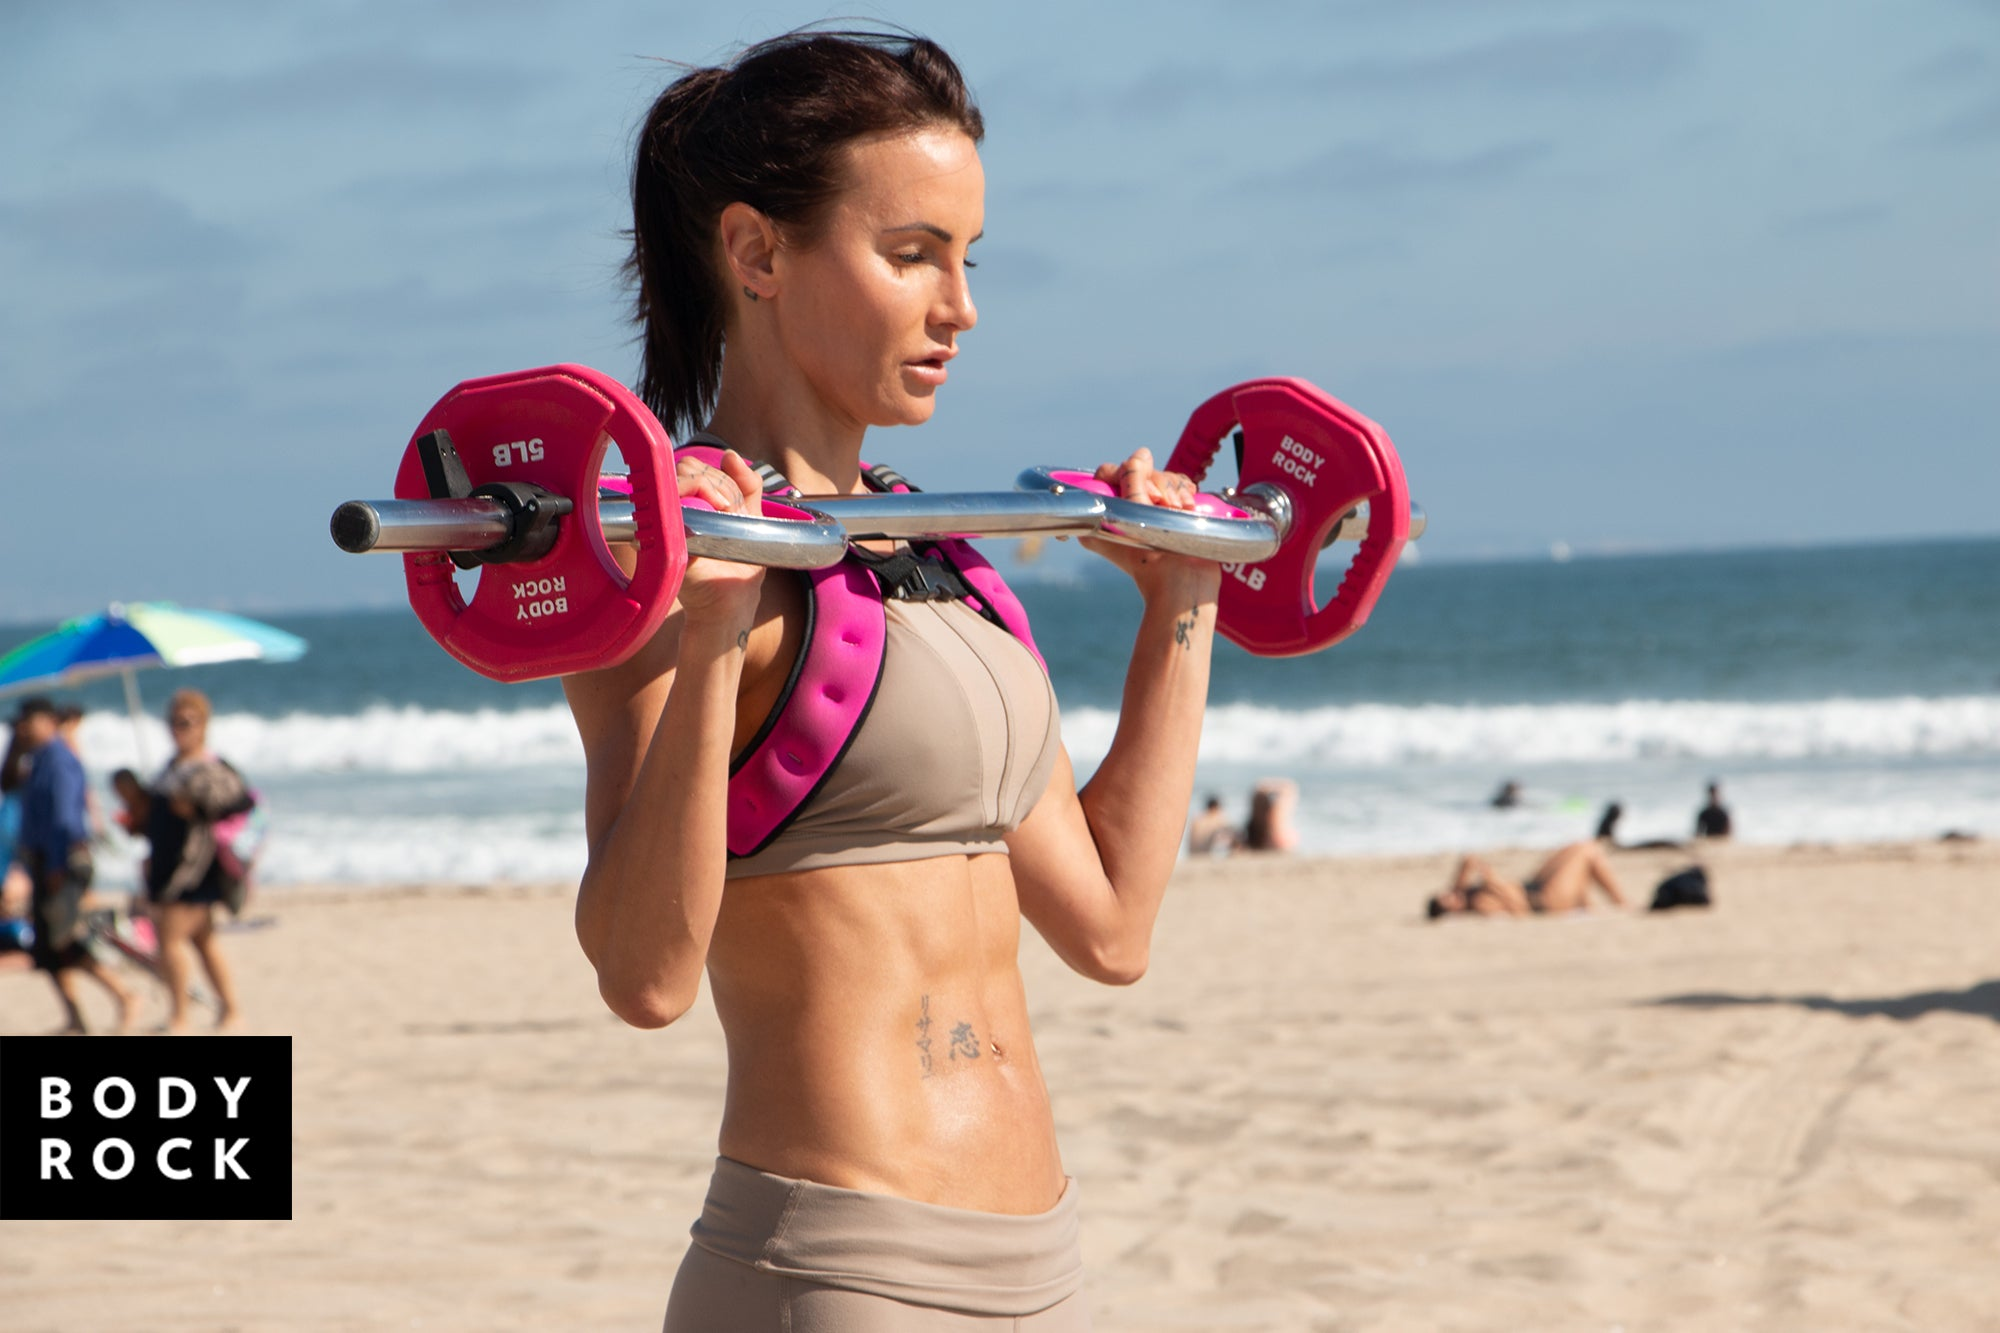 Push or Pass: A FitFreak's Guide to Knowing When to Stop or Keep Going